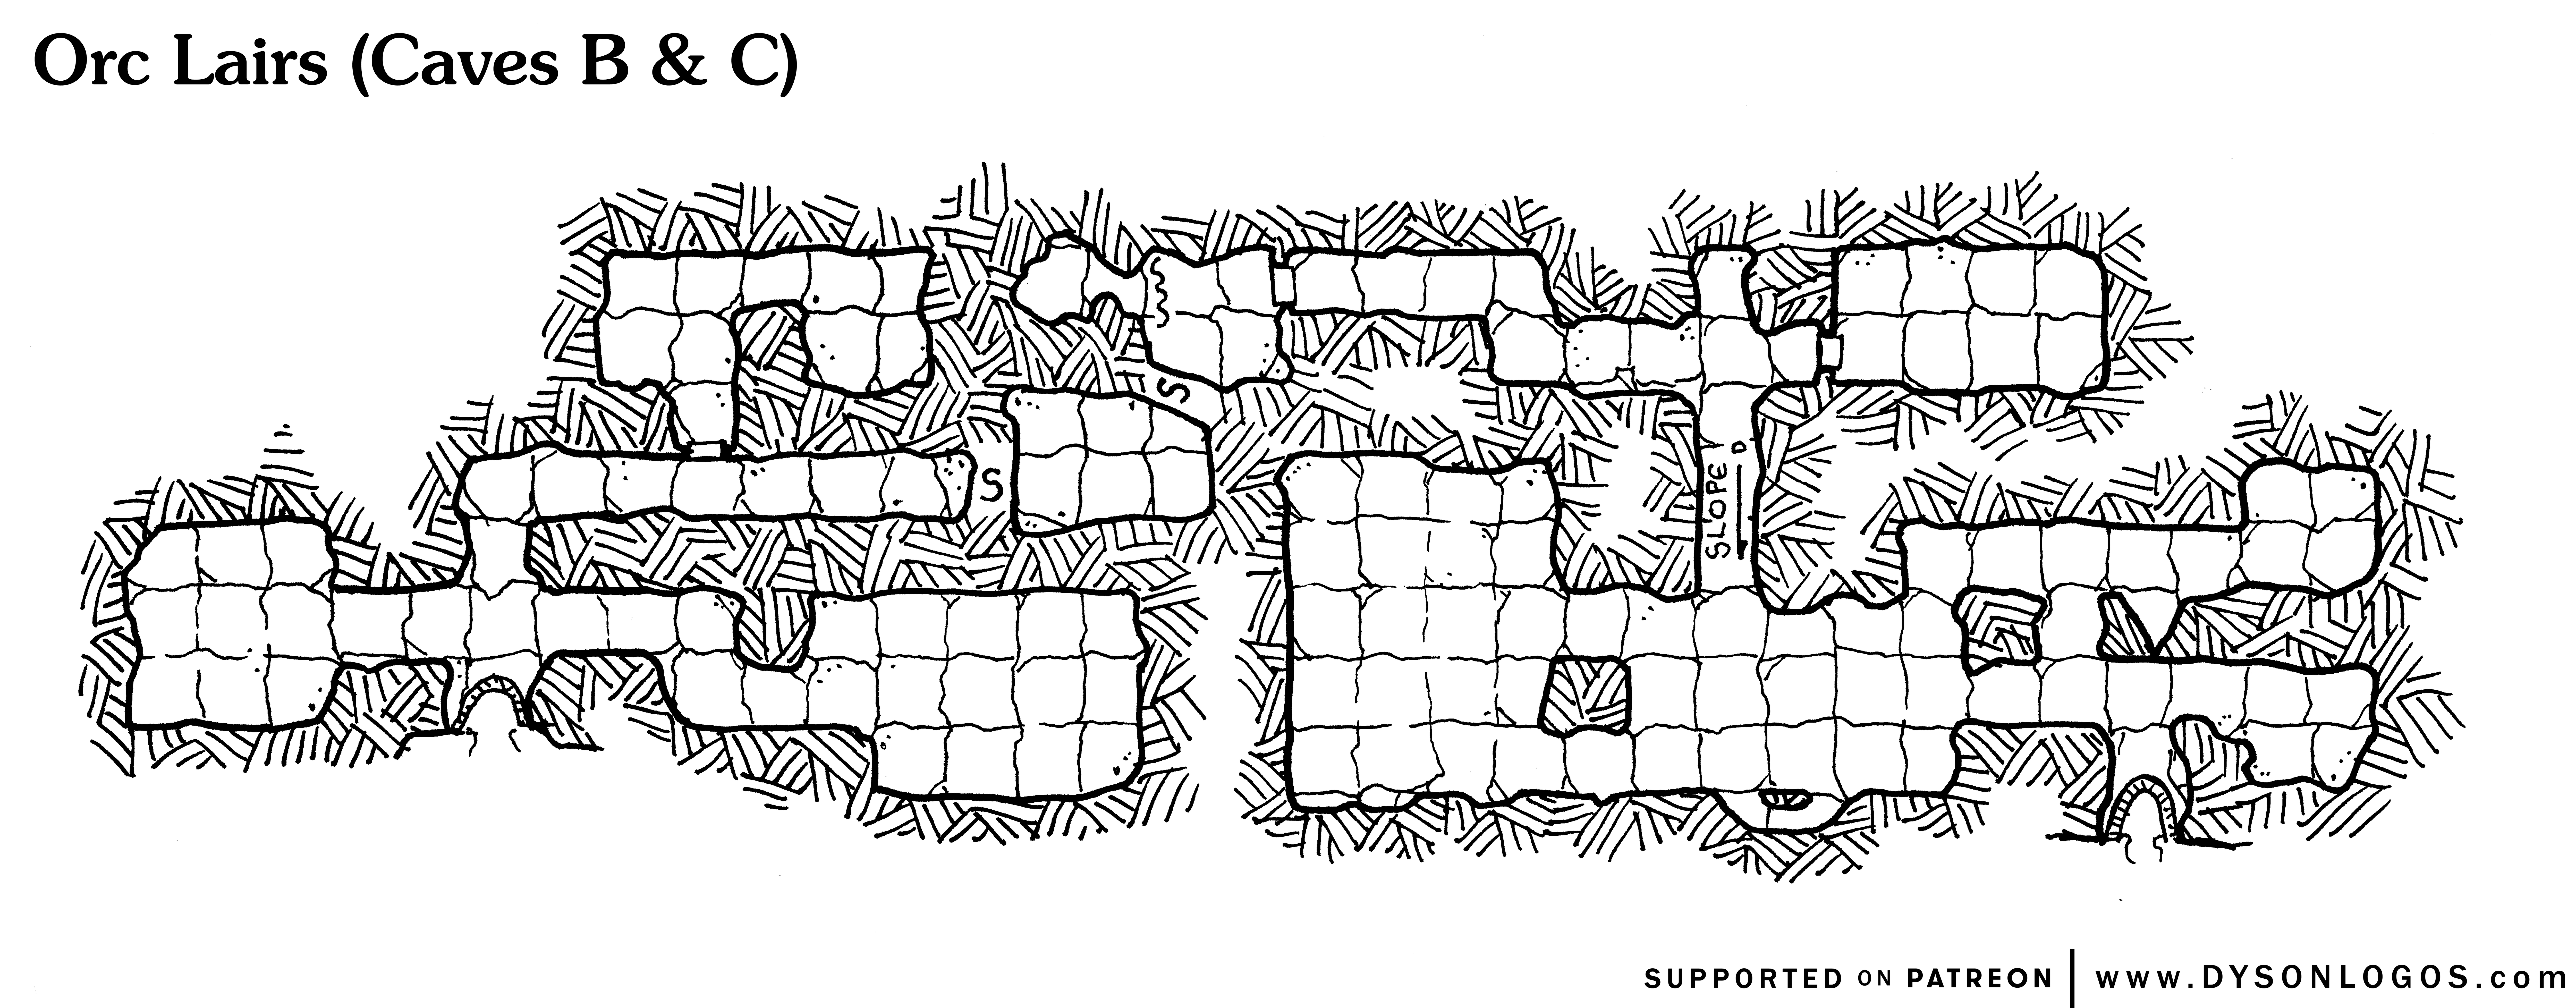 caves-of-chaos-b-c-orc-lairs-patreon